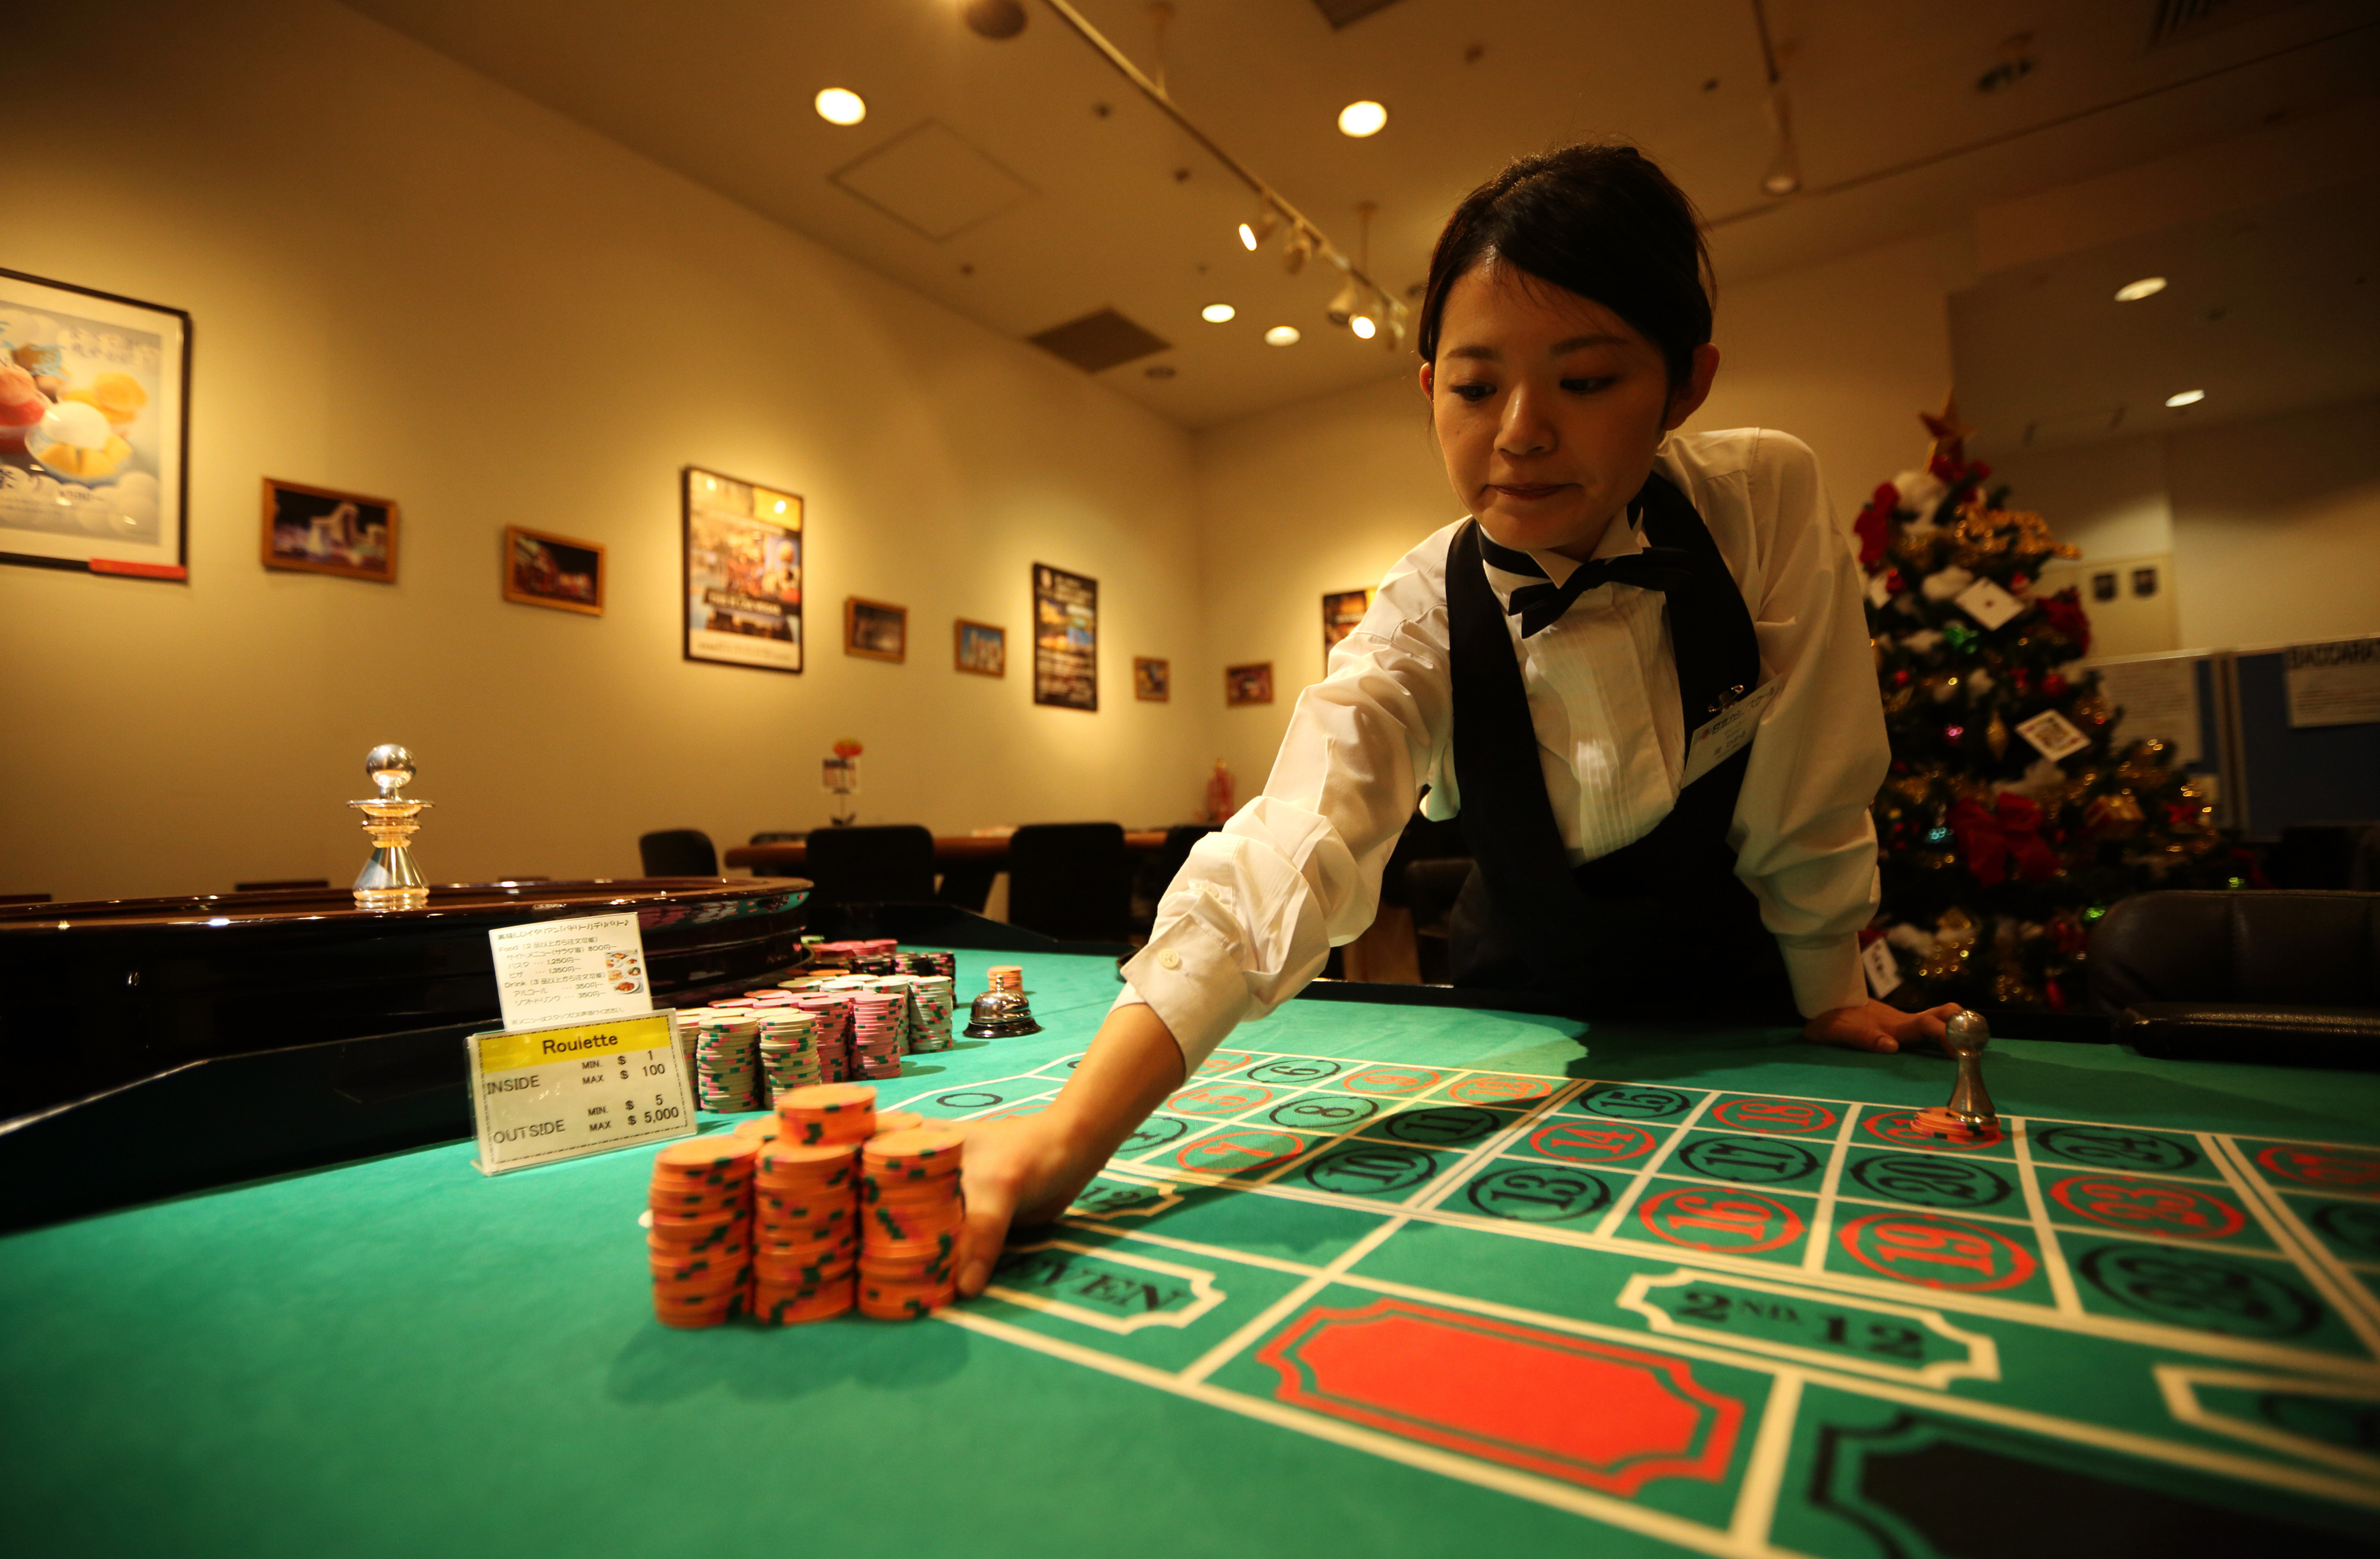 lawson suntory execs to join casino push the japan times